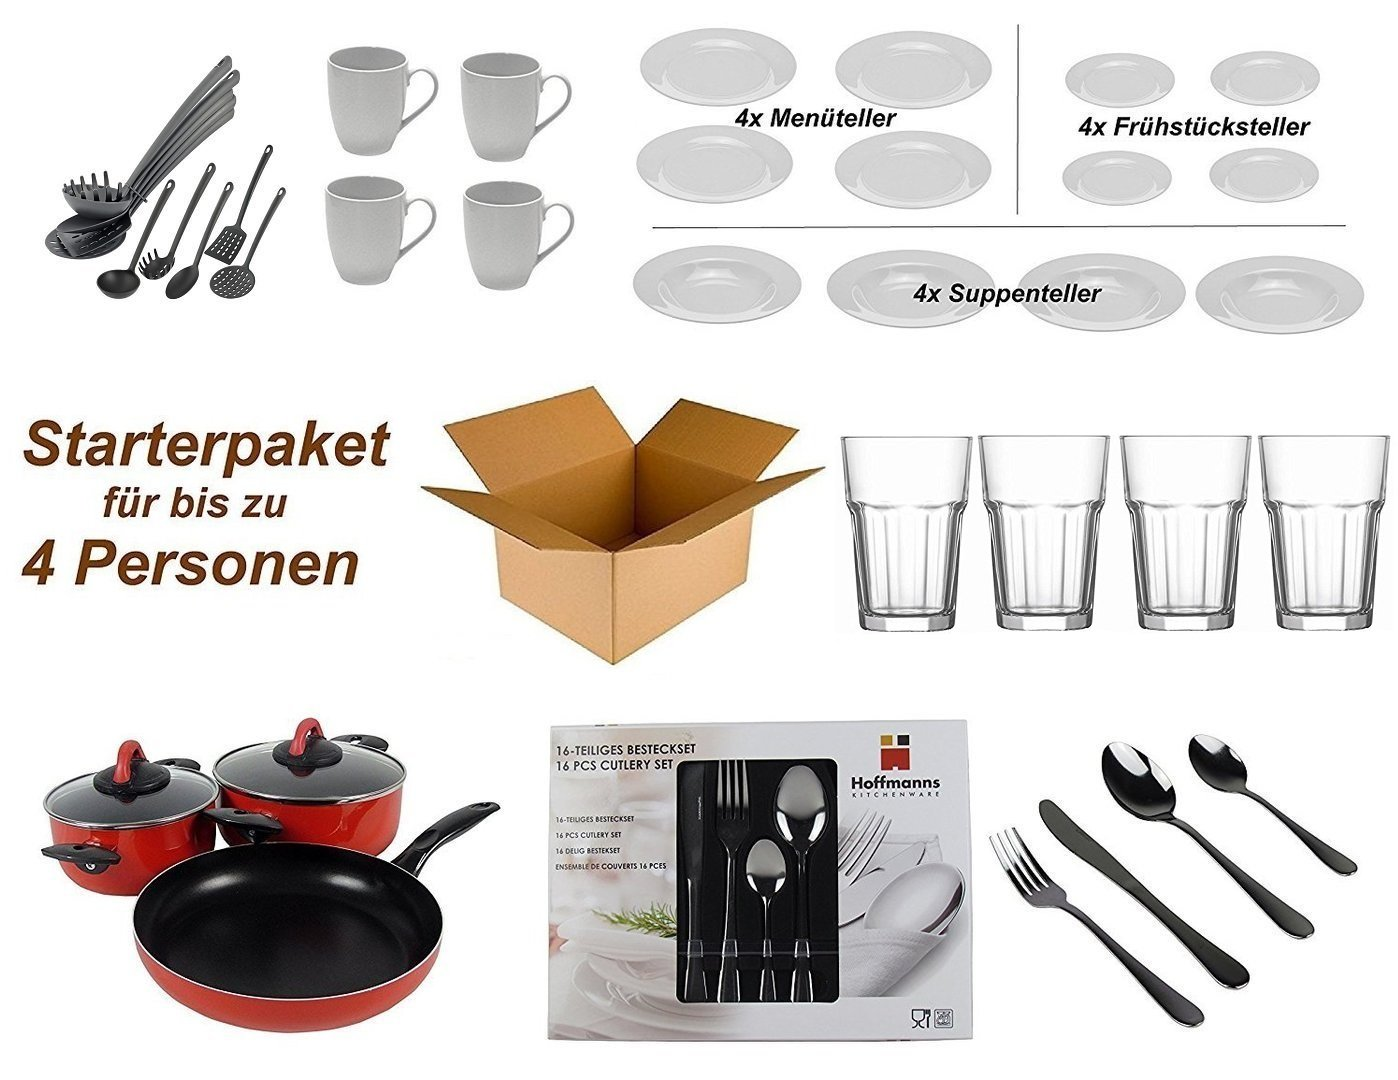 Household Home Furnishing Starter Pack for 4 People - Kitchen, Cutlery, Crockery